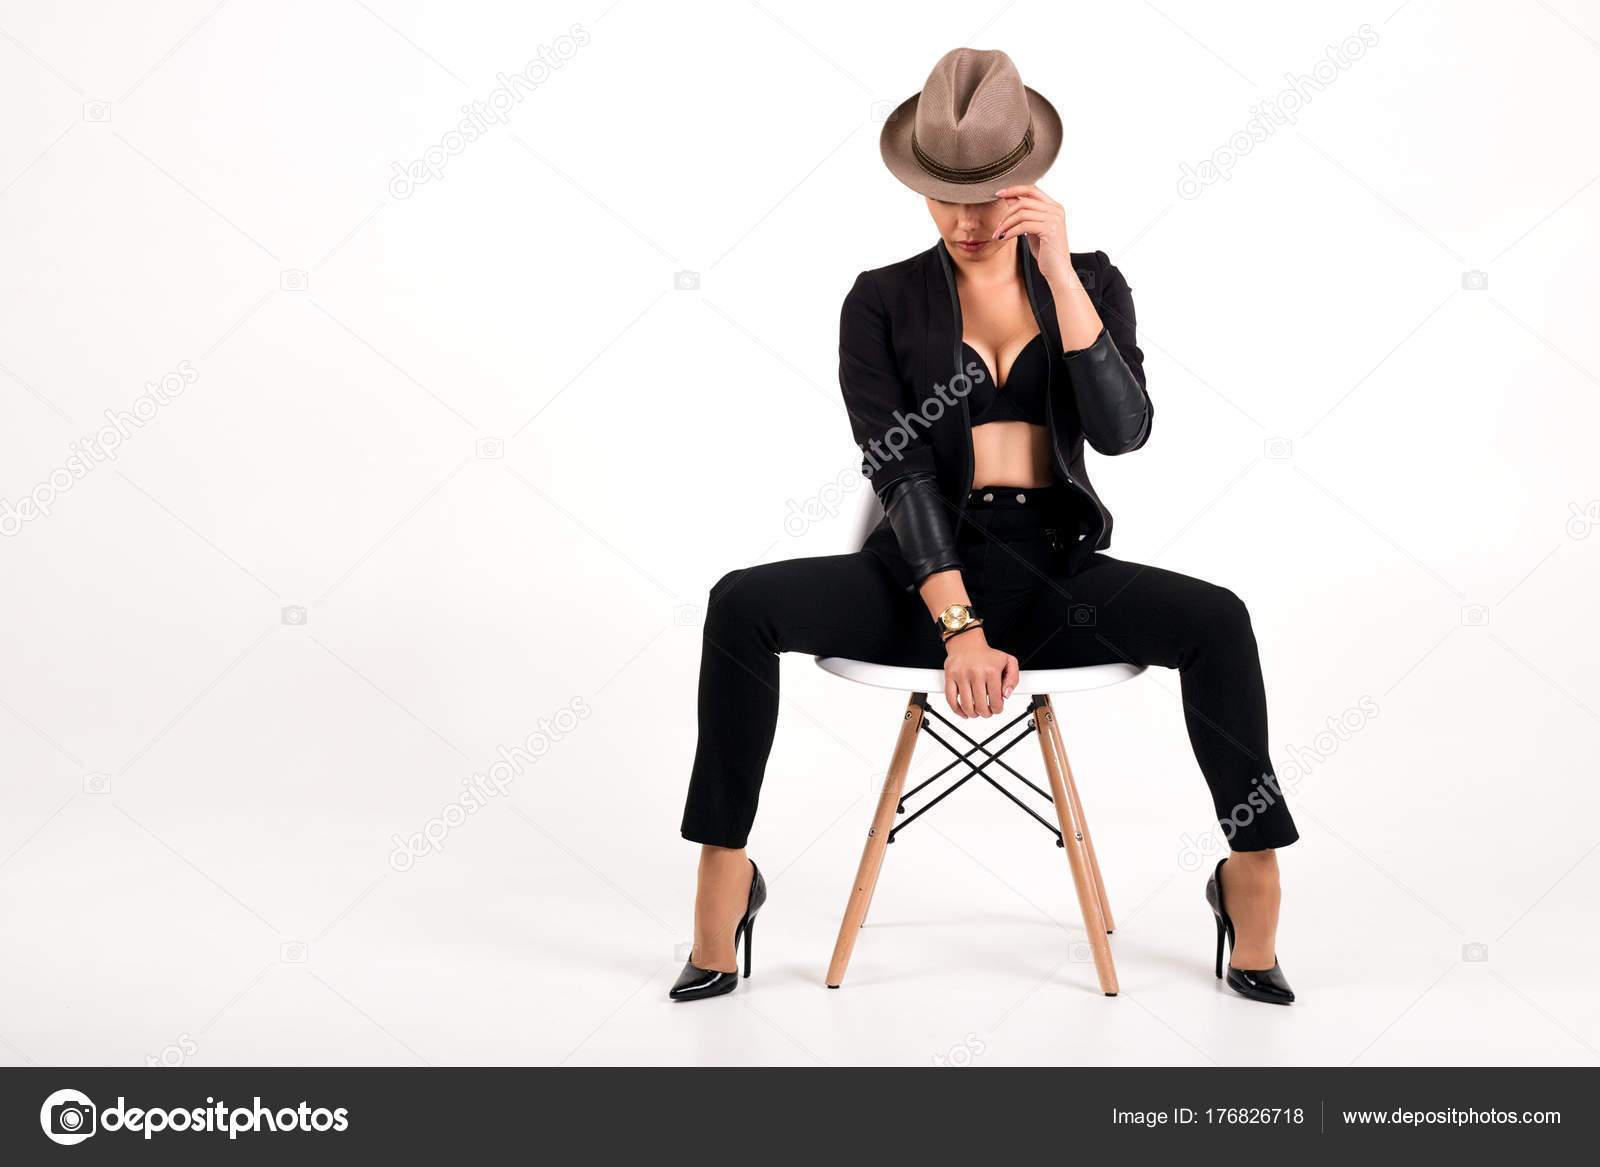 Chair Pants Sexy Woman In Pants Jacket Bra And Hat Sitting On Chair On White